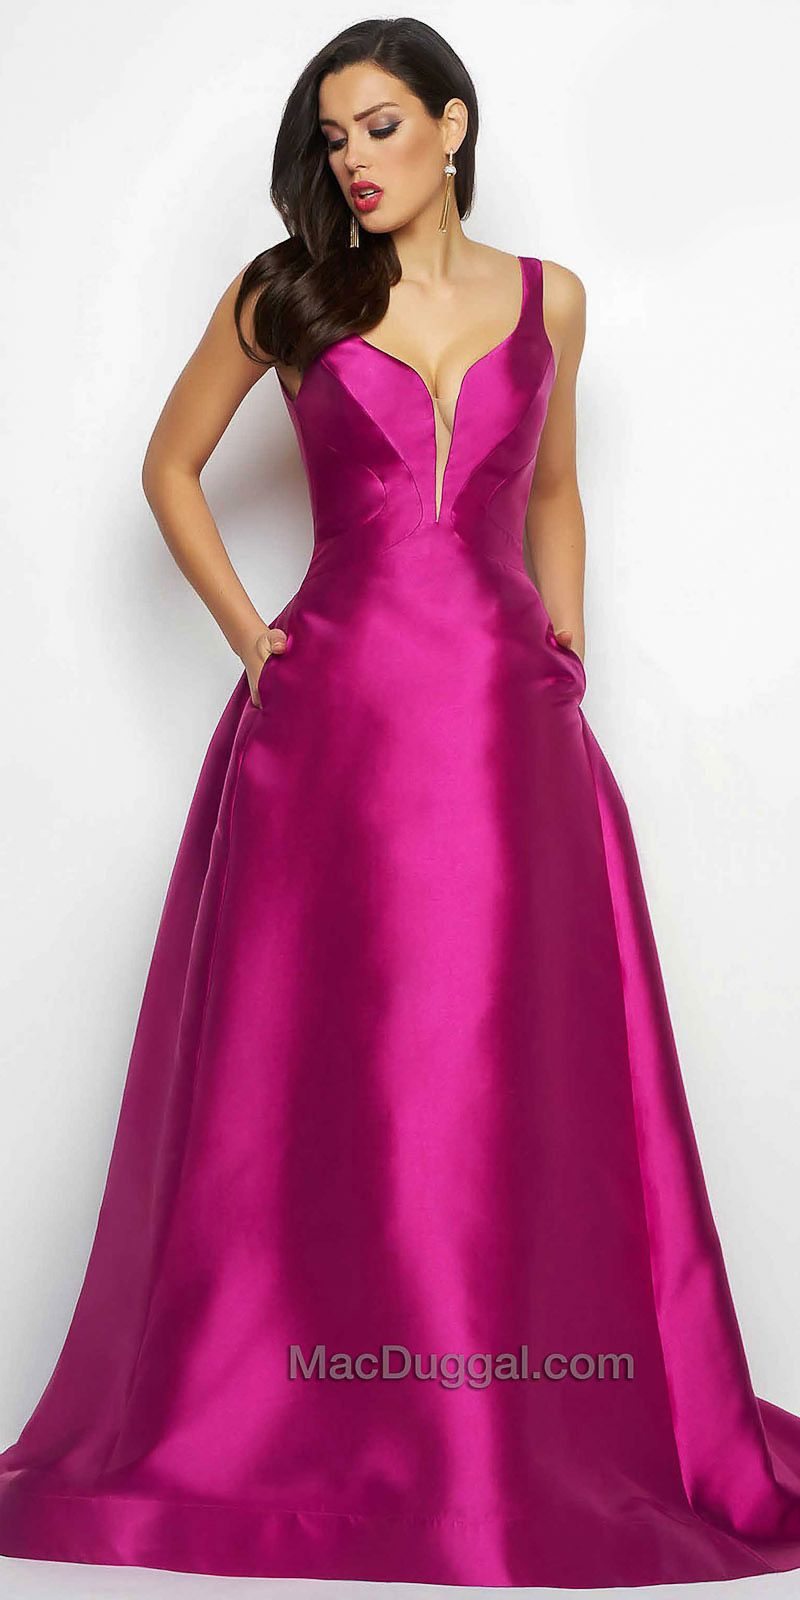 Plunging Sweetheart A-line Ball Gown by Mac Duggal #edressme ...